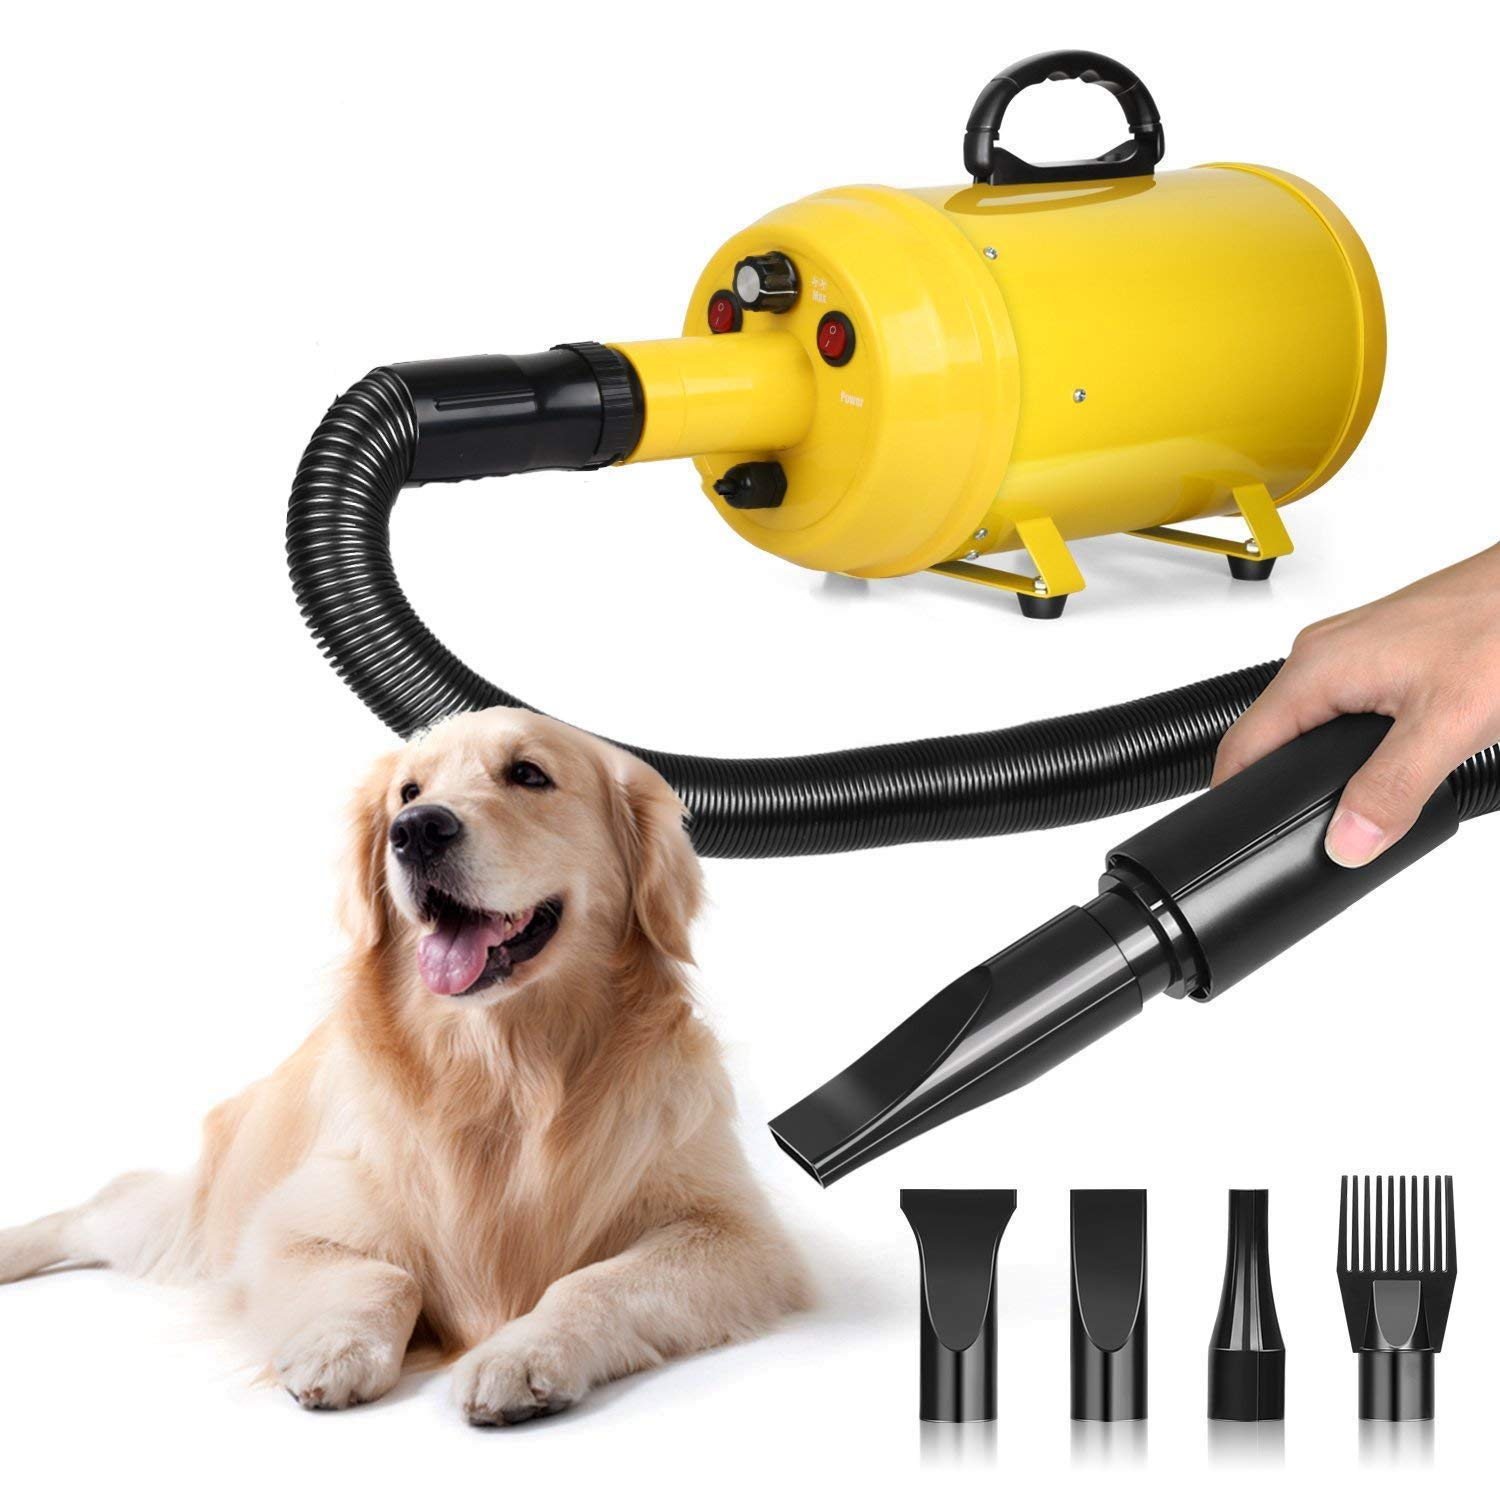 amzdeal Dog Dryer Dog Hair Dryer 3.8HP 2800W Pet Blow Dryer Professional Dog Grooming Dryer Dog Blower with Adjustable Speed and Temperature, Spring Hose, and 4 Different Nozzles by amzdeal